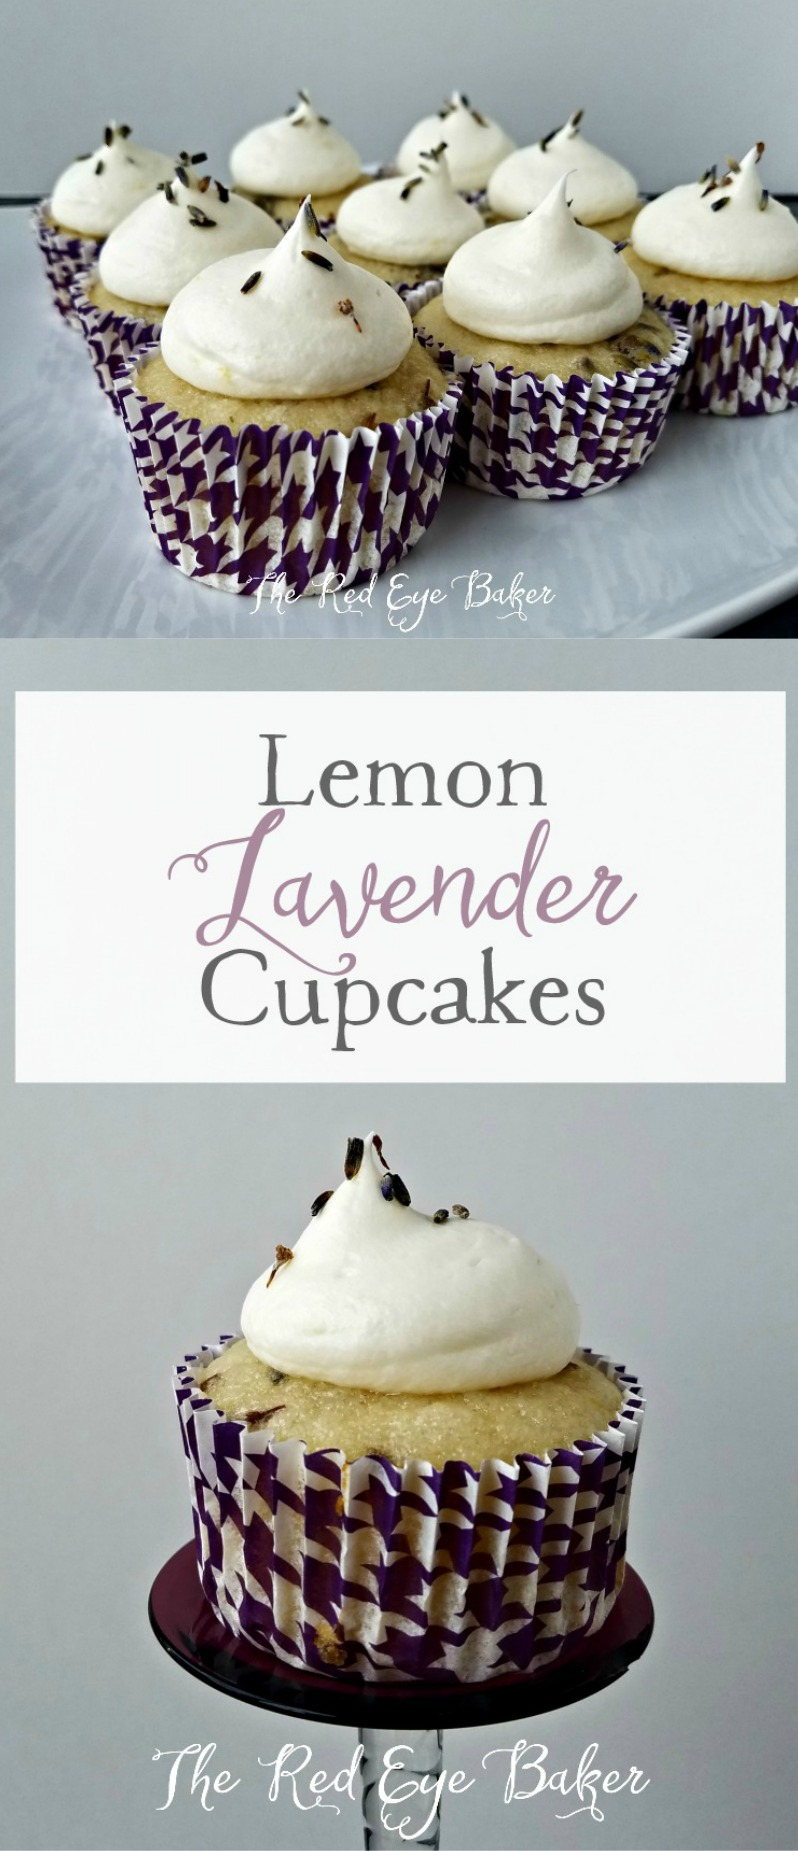 Lemon Lavender Cupcakes | Join me as I set out on a culinary adventure and use lavender for the first time in my recipe for these delicious Lemon Lavender Cupcakes.